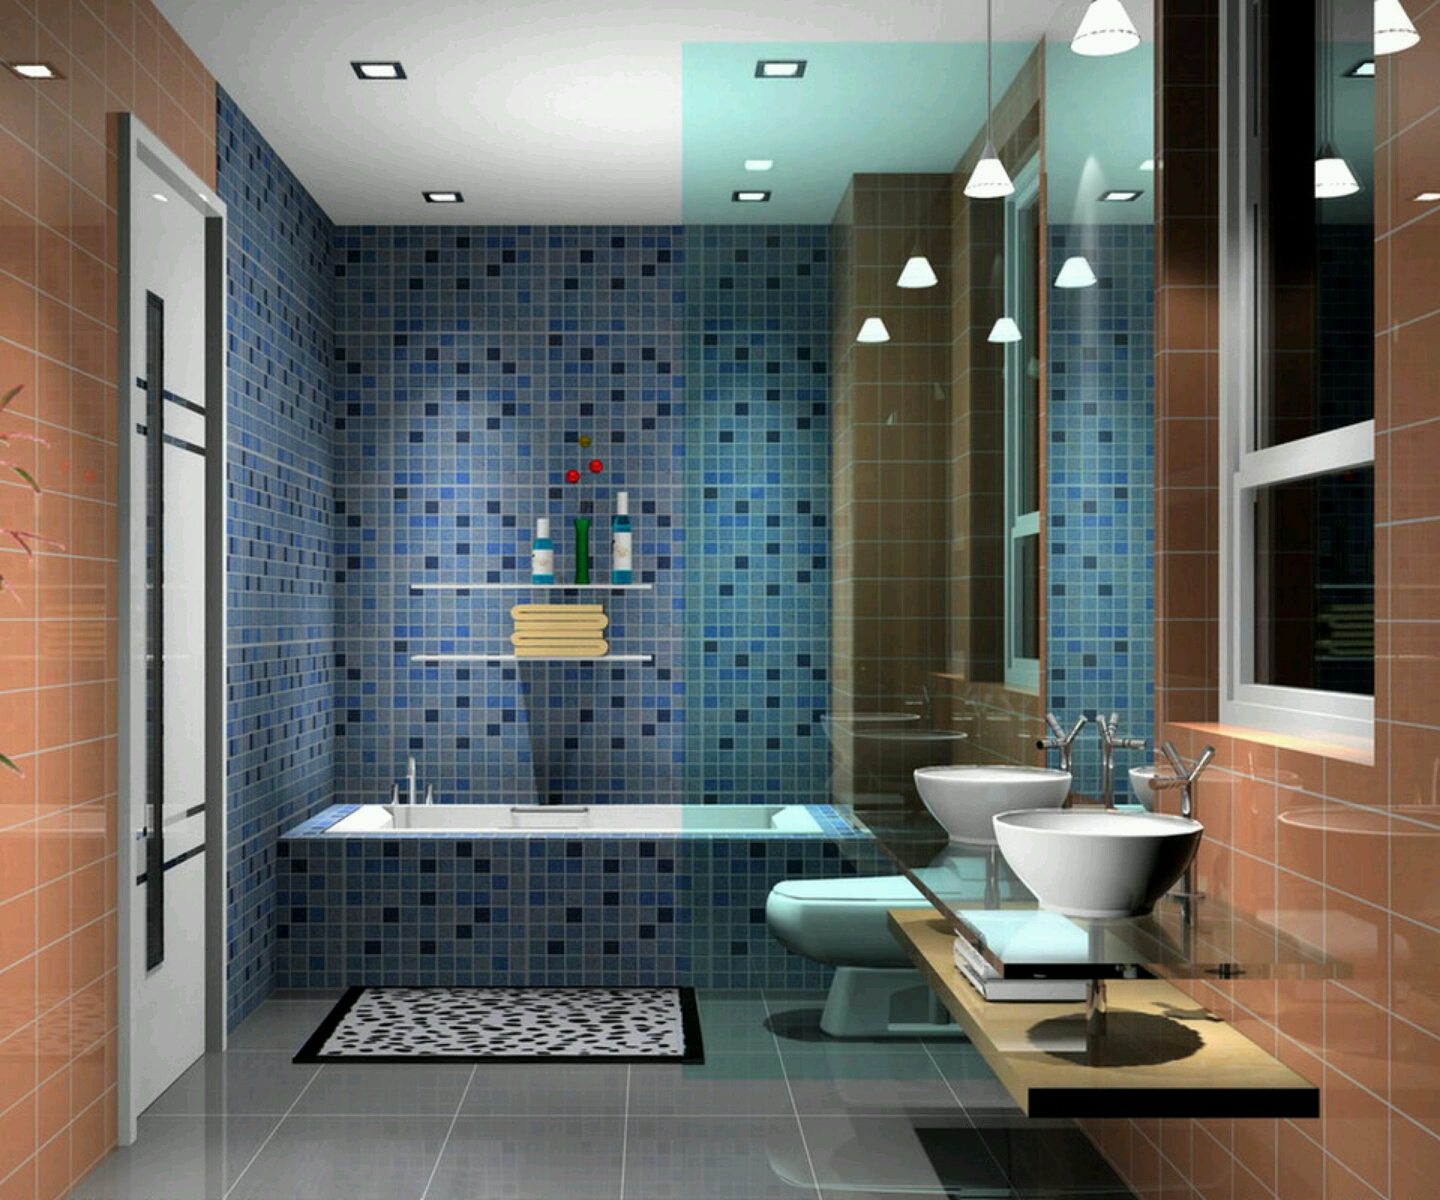 New home designs latest modern bathrooms best designs ideas for Bathroom designs 2013